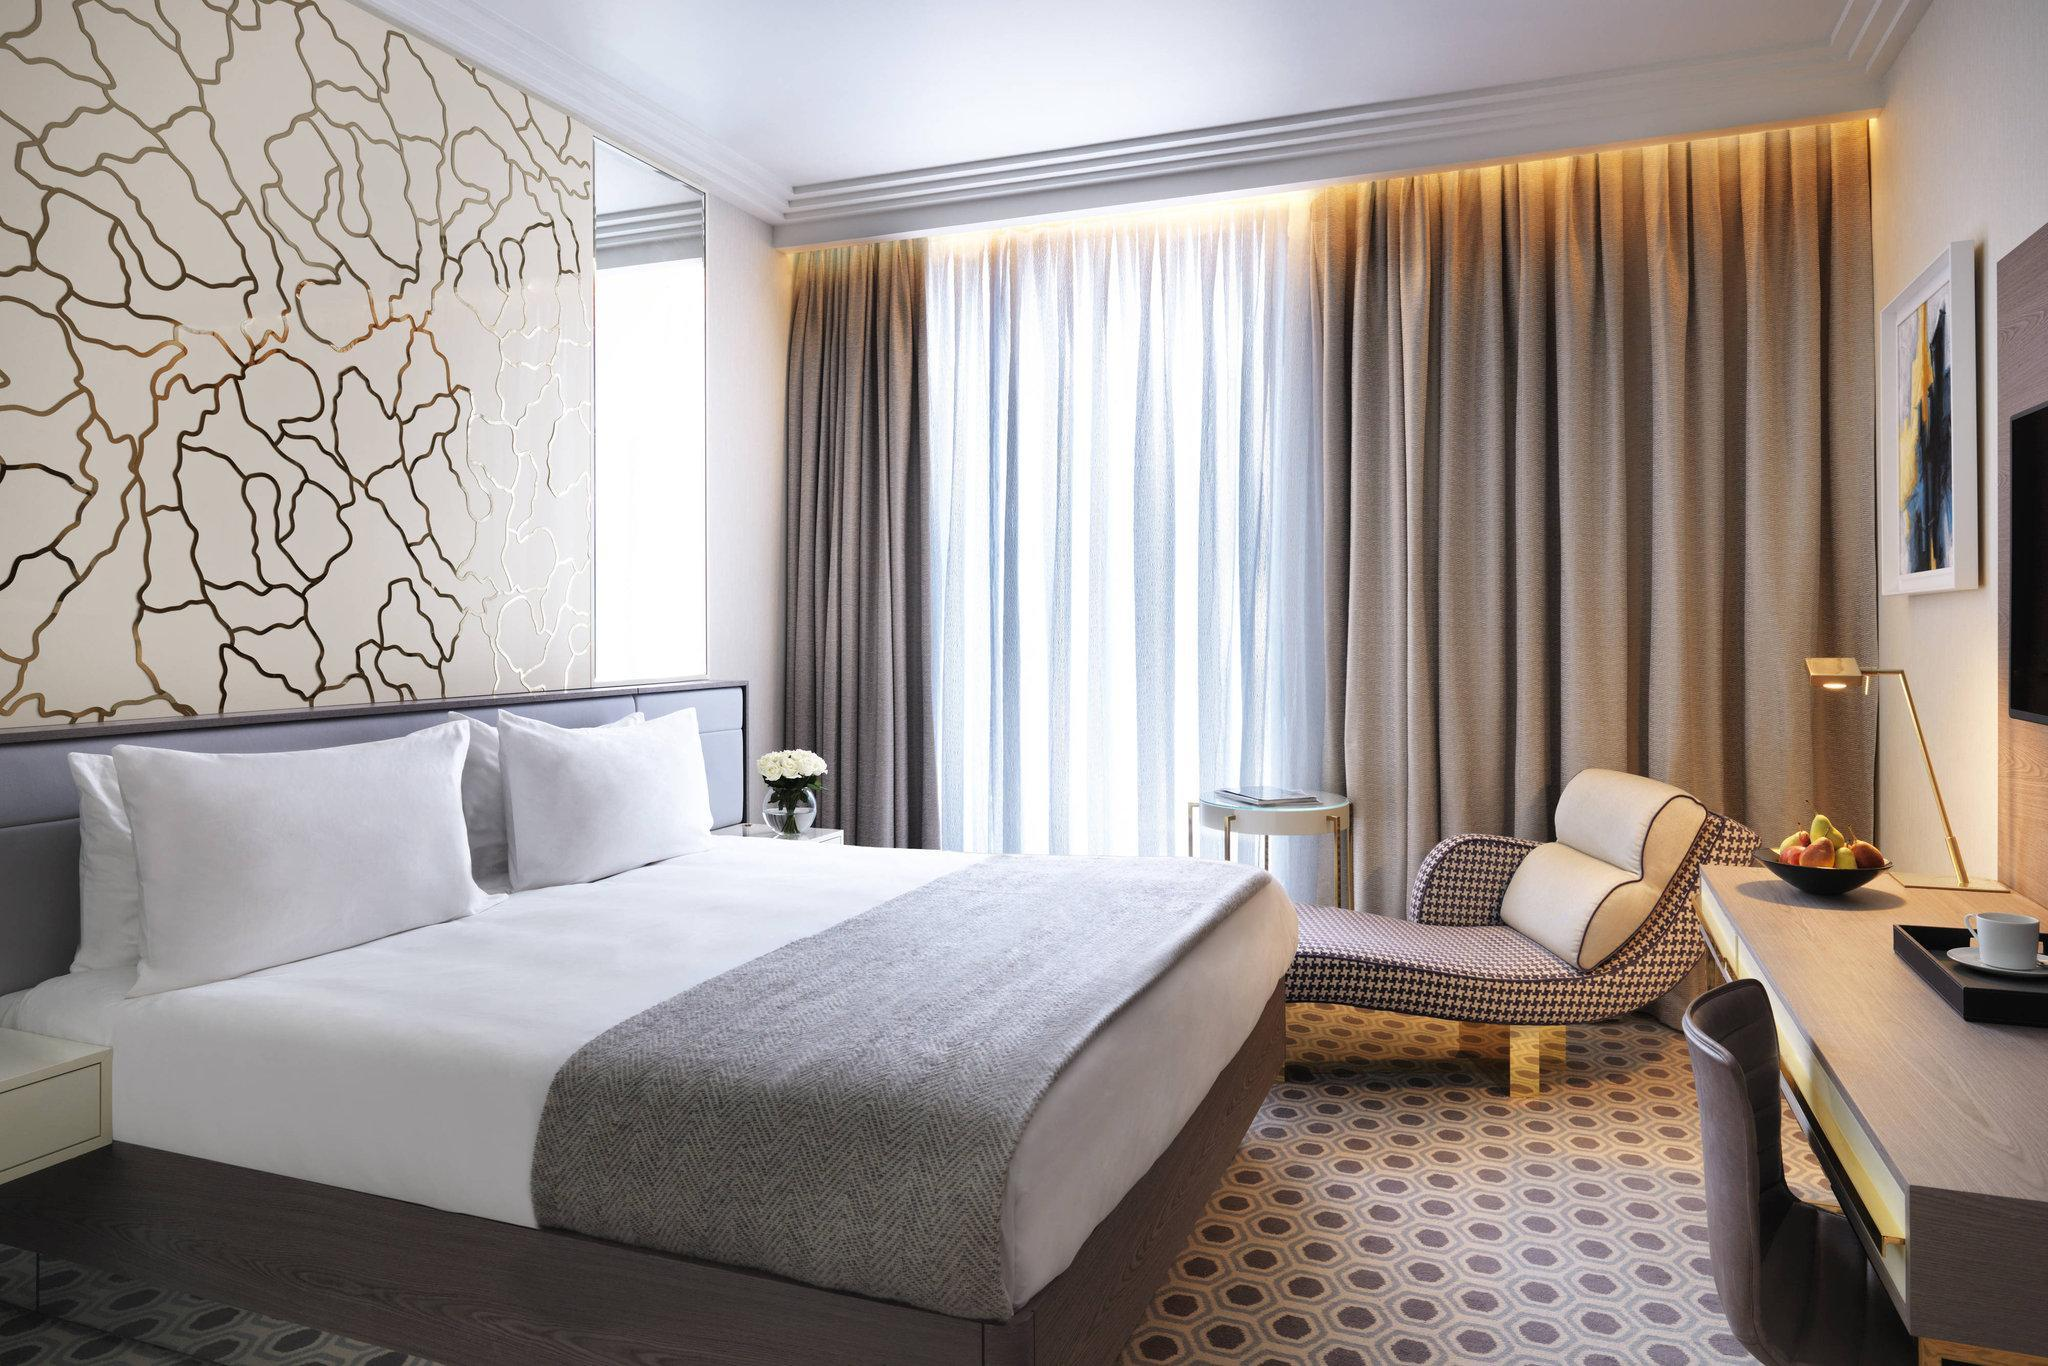 Boulevard Standard Room, Guest room, City view